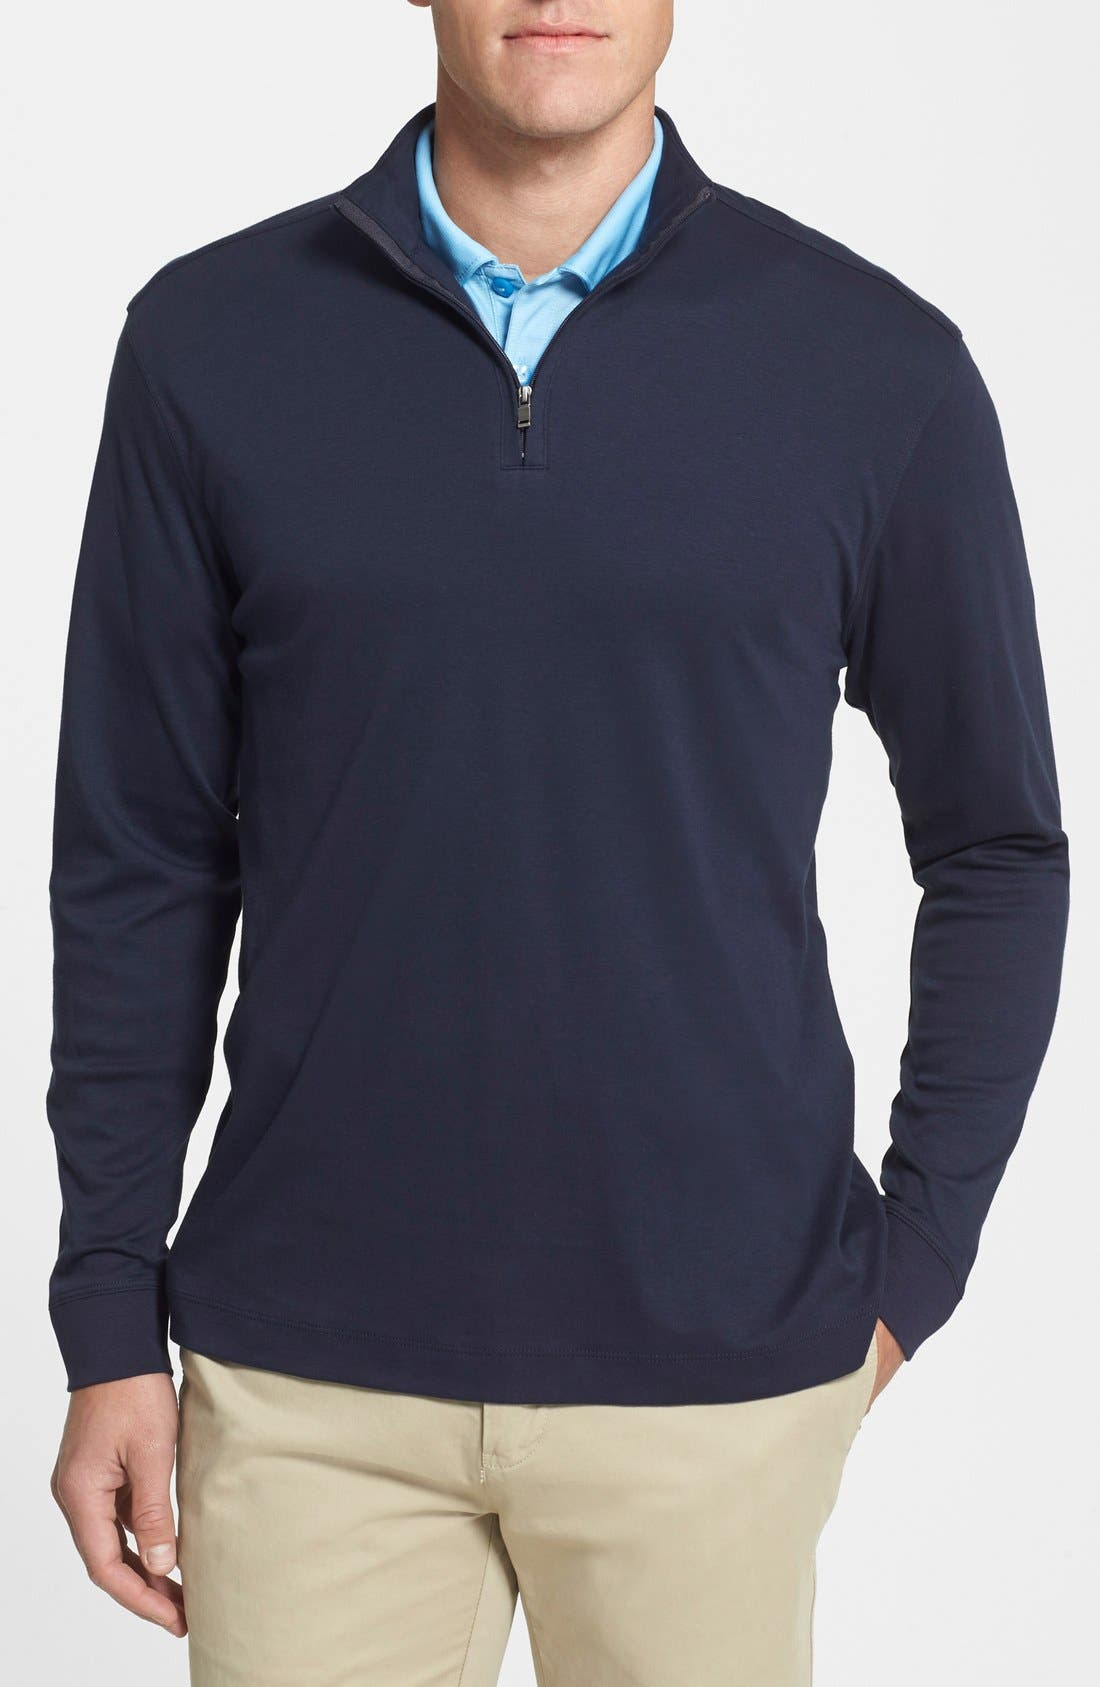 CUTTER & BUCK 'Belfair' Quarter Zip Pullover